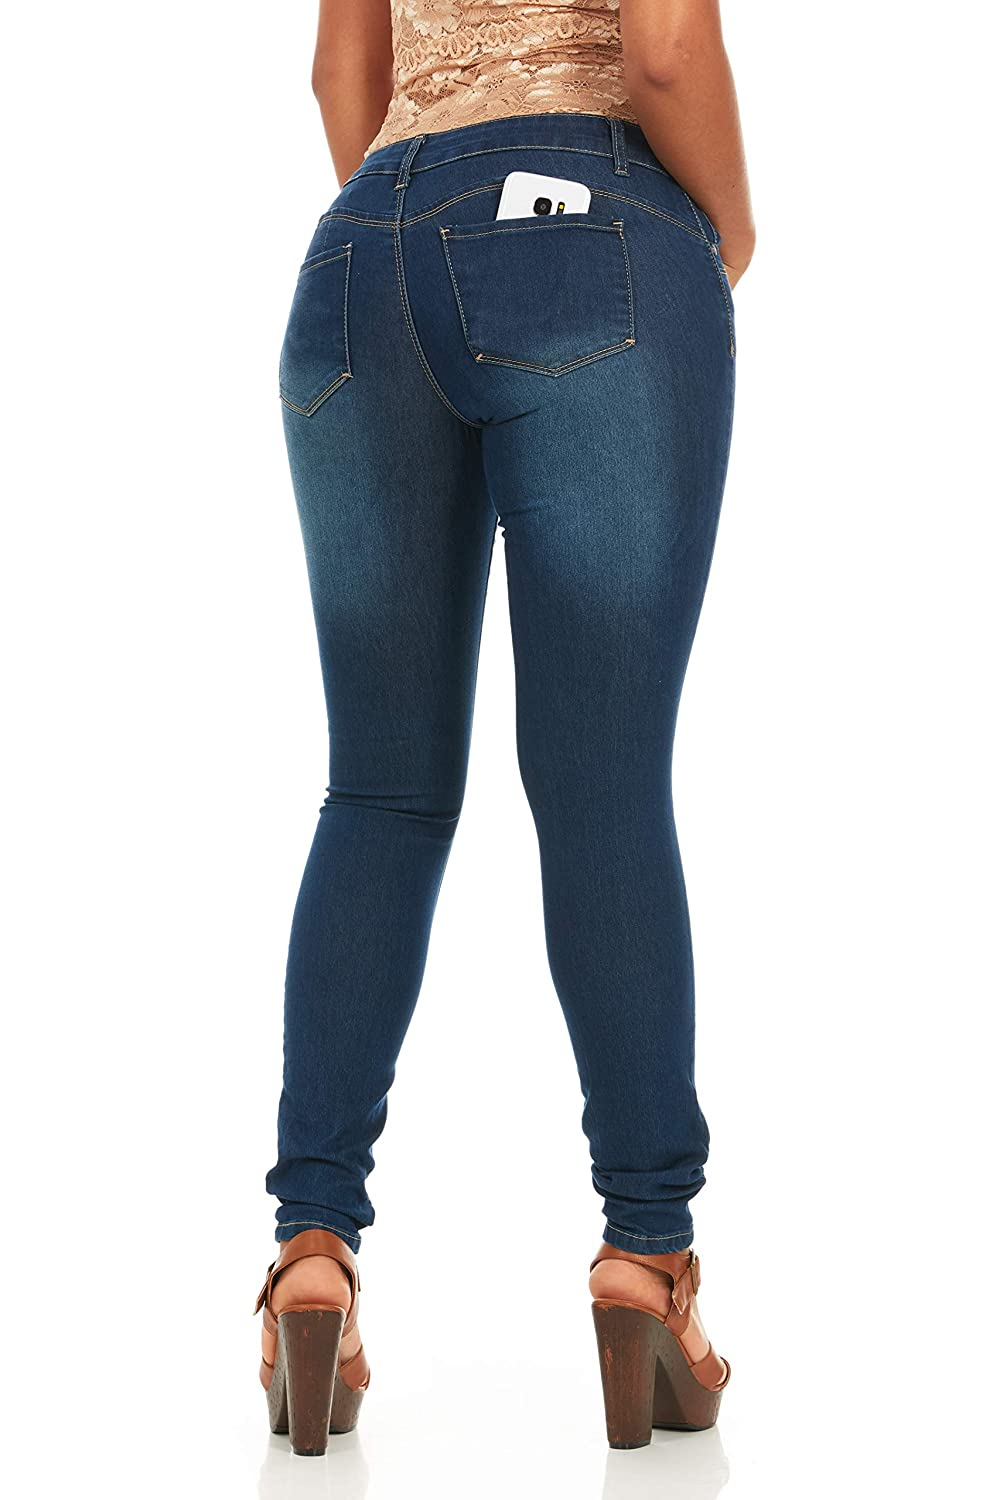 7b66aa57a39 Low Waist Butt Lifter Skinny Slim fit Stretchy Jeans for Women with  Adjustable Extra Lift Band at Amazon Women s Jeans store